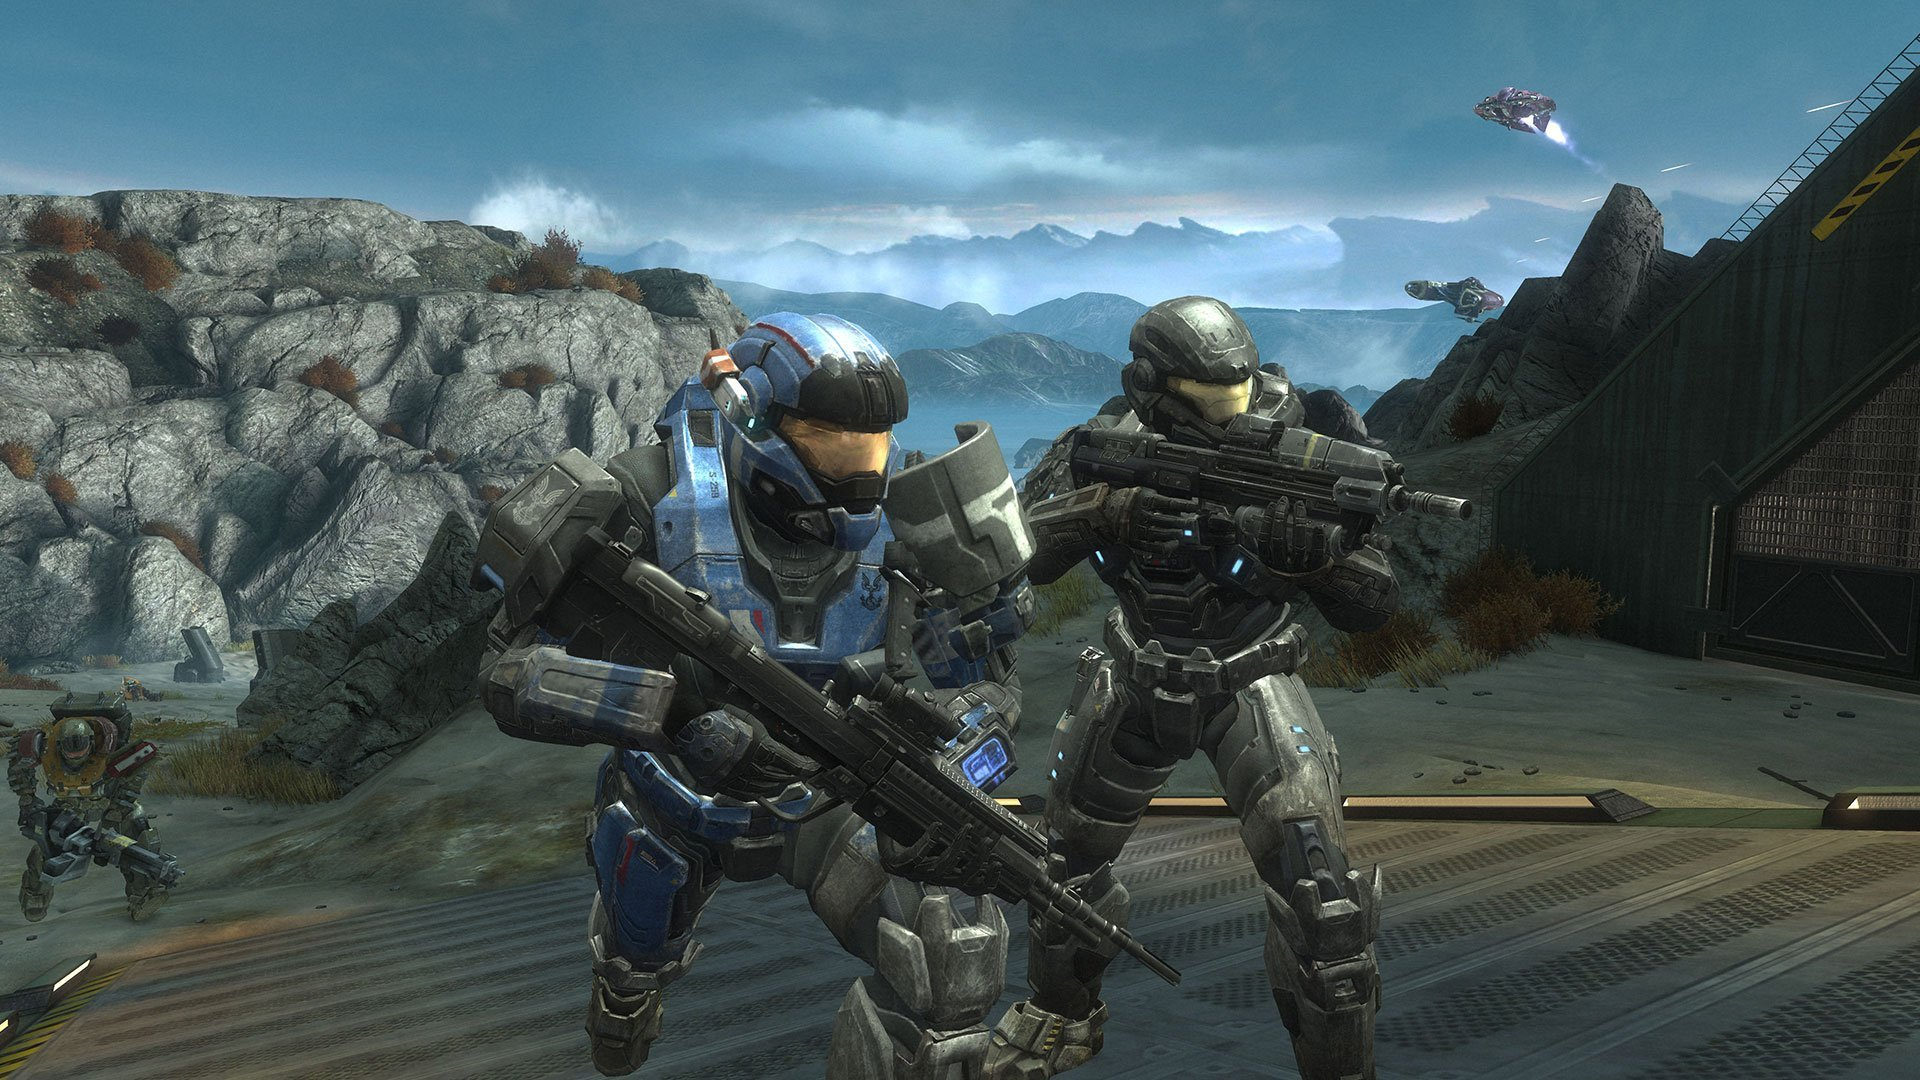 Halo Reach To Be Added To Halo The Master Chief Collection